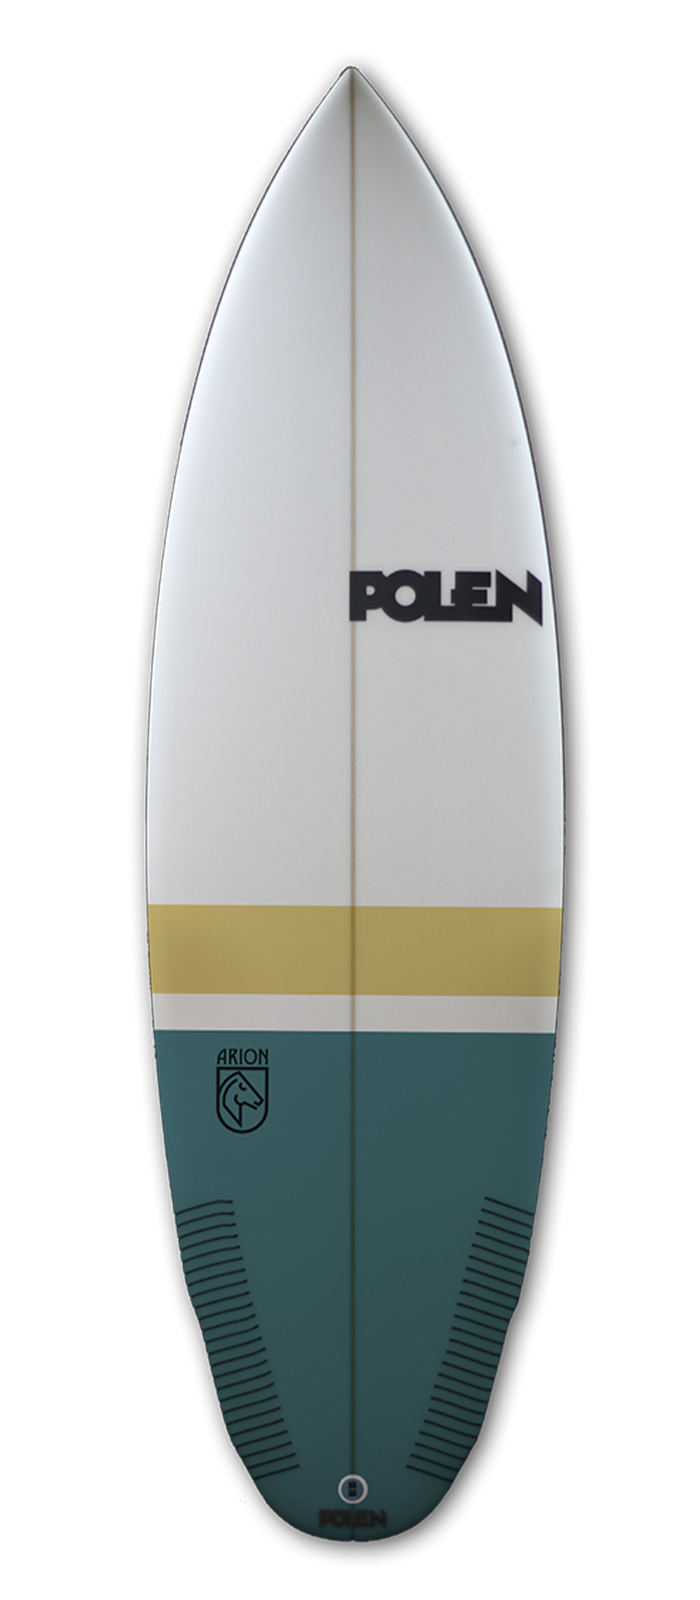 ARION surfboard model